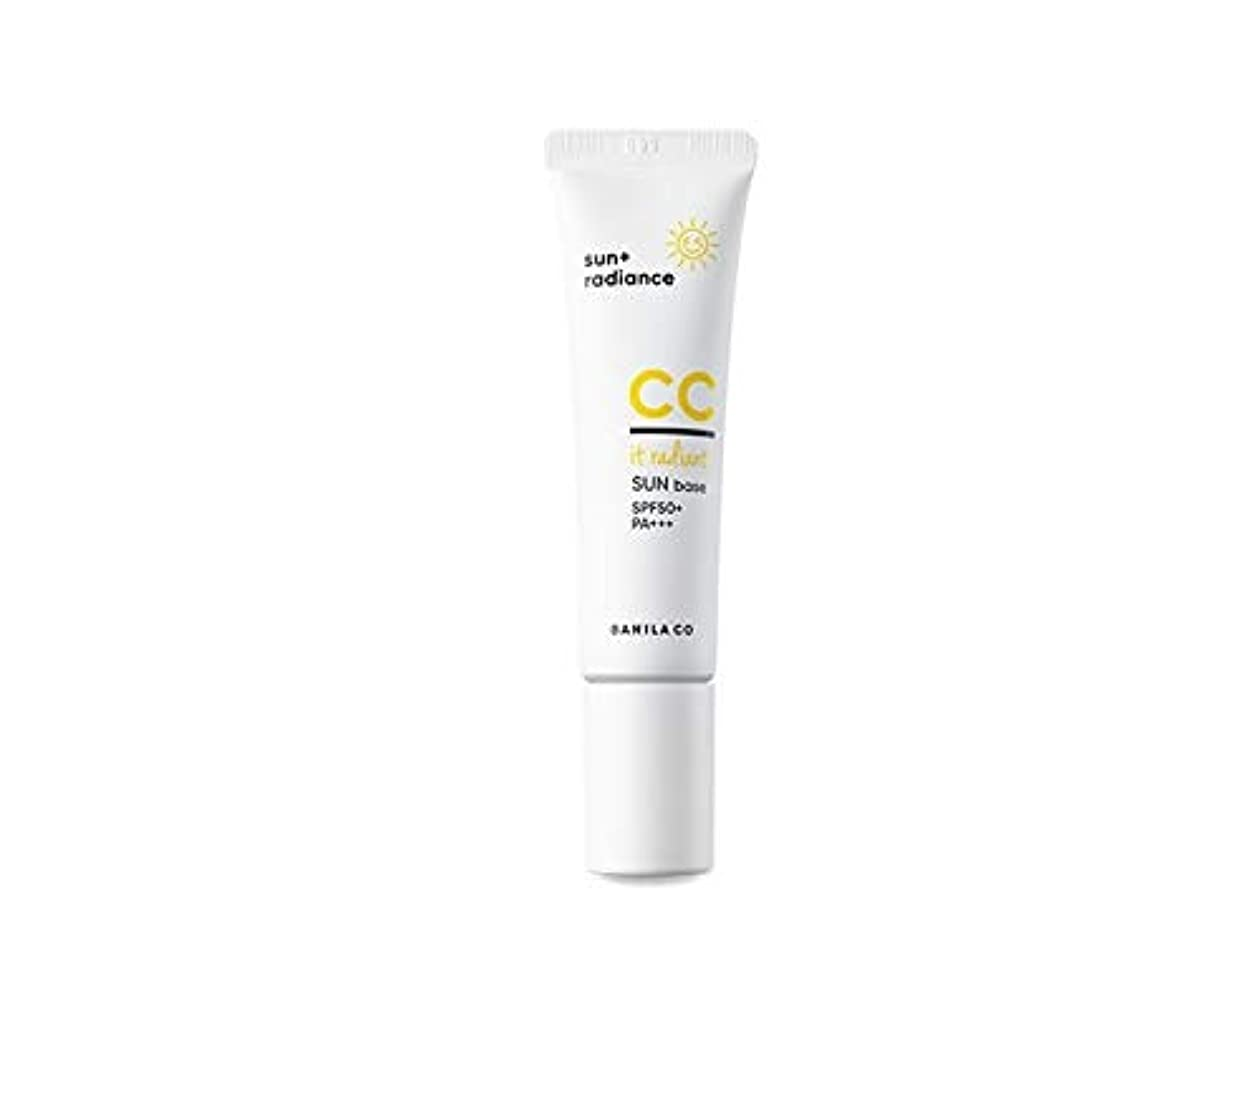 穴トンネル方向banilaco It Radiant CCサンベースSPF50 + PA +++ / It Radiant CC Sun Base SPF50 + PA +++ 30ml [並行輸入品]